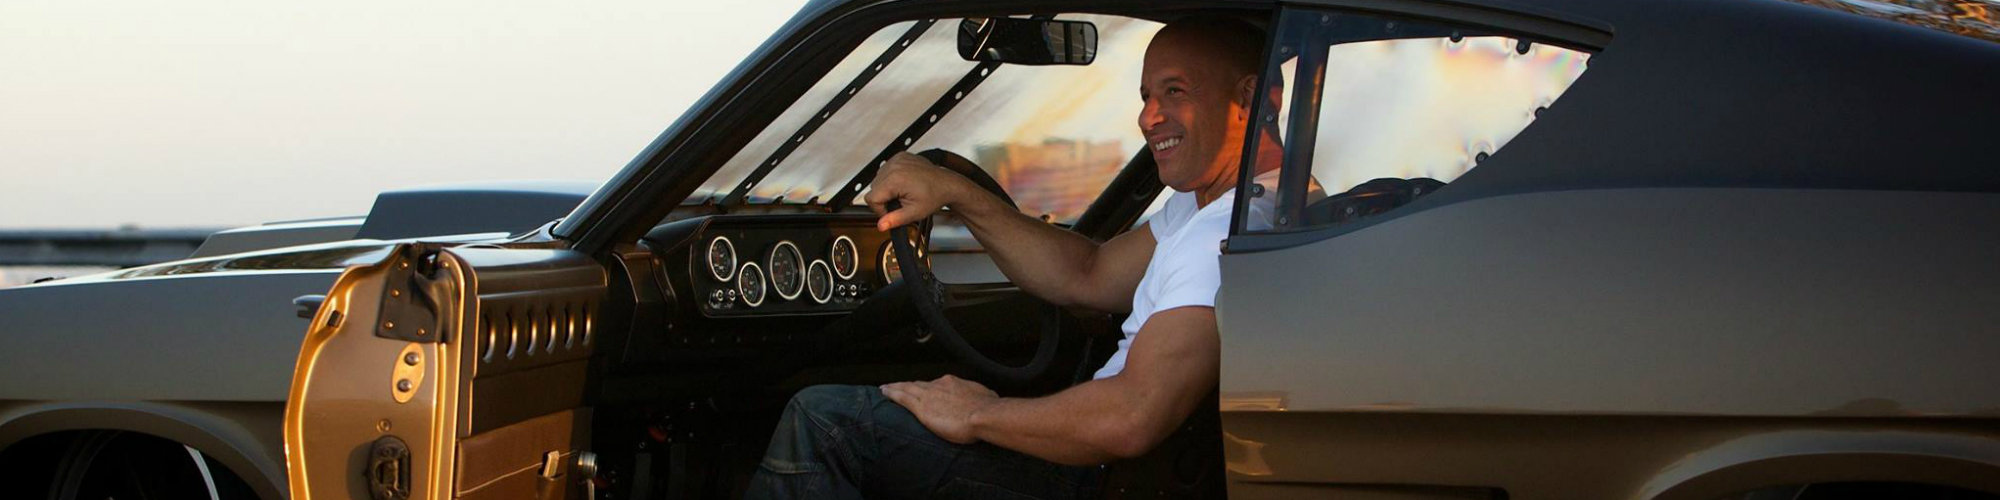 The Fast and the Furious (2001) was a huge financial success and just a short 15 years later, an eighth film in the series looks to be underway. With the seventh film in the series being one of the most financially successful films in history, the pressure is on both the cast and crew to make the eighth film, tentatively titled Fast 8, even bigger than before.